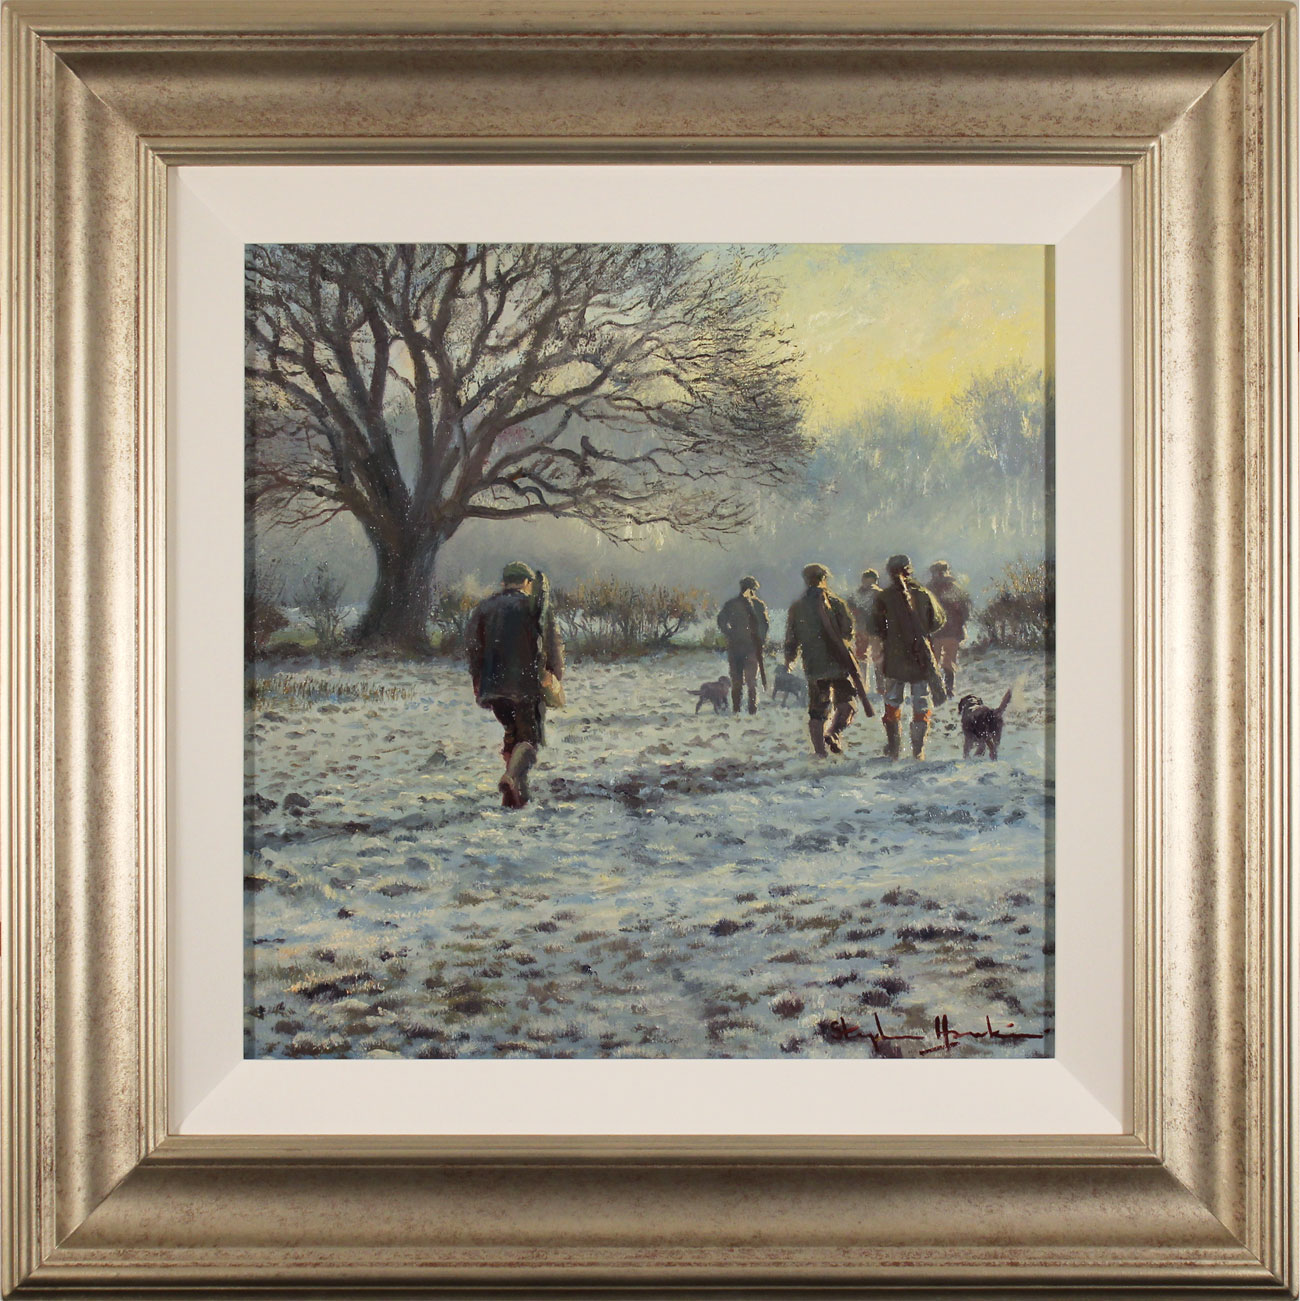 Stephen Hawkins, Original oil painting on canvas, Winter Morning, North Yorkshire Click to enlarge